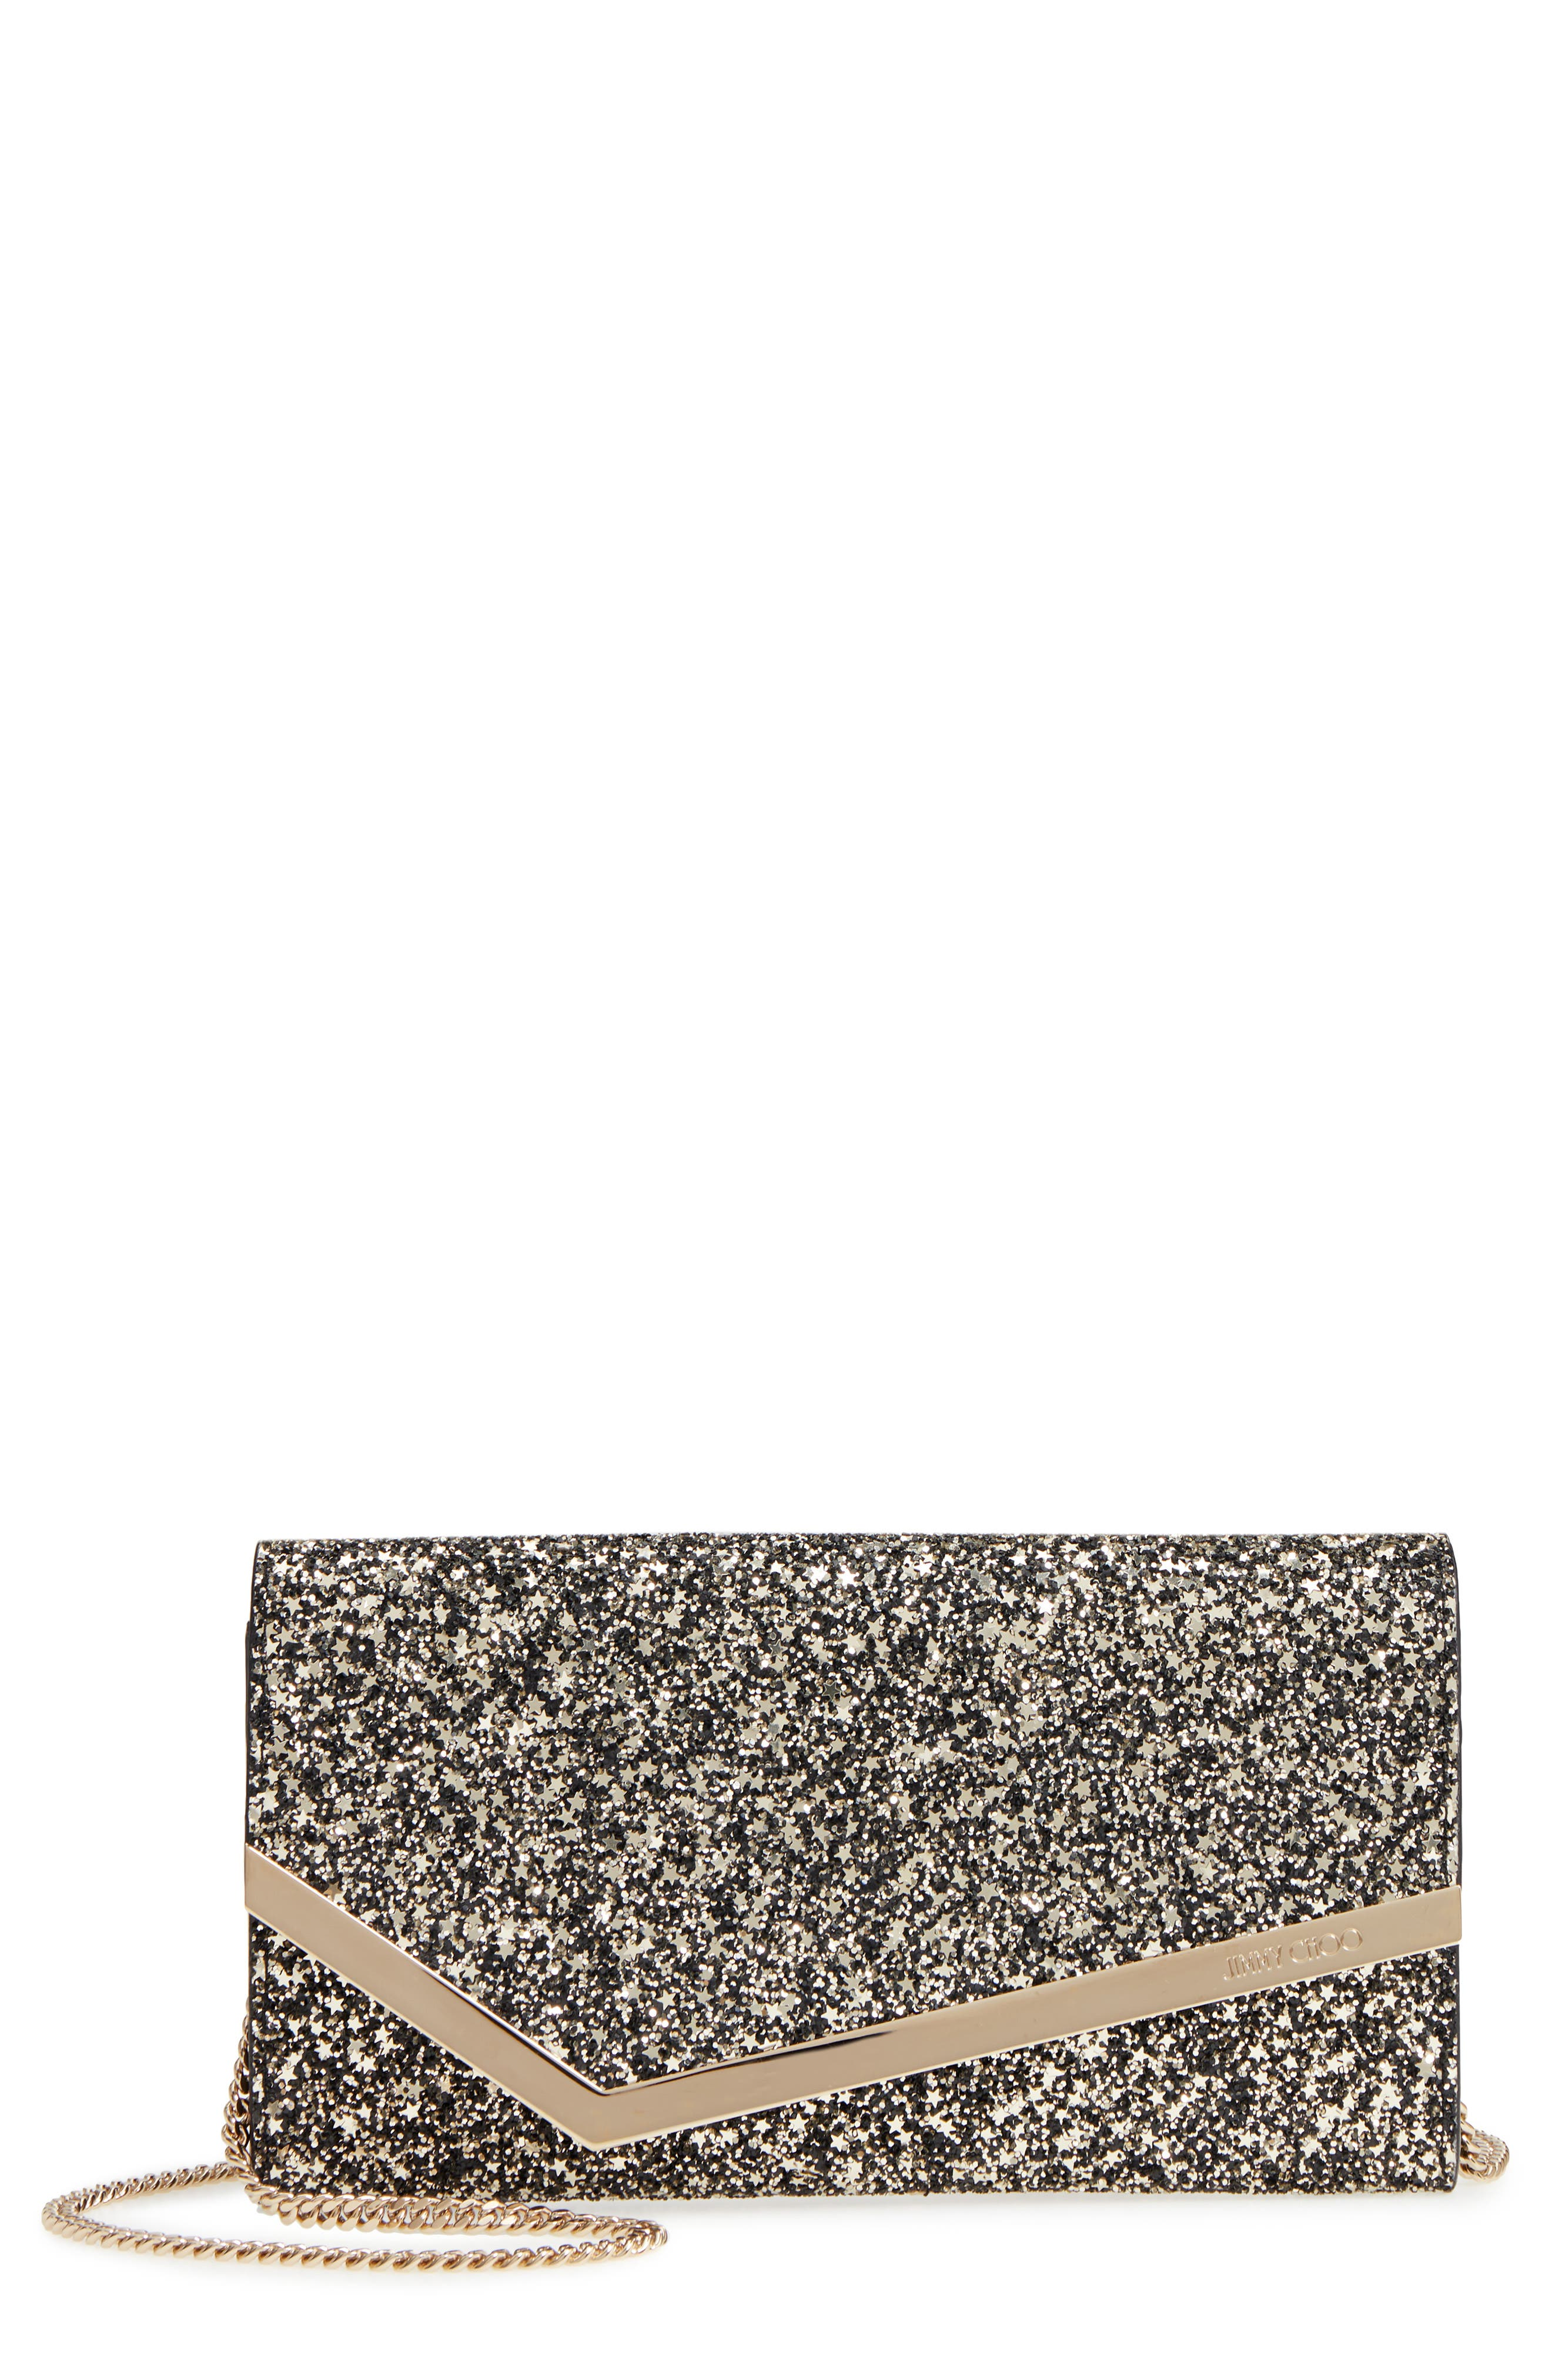 Emmie Star Glitter Clutch,                             Main thumbnail 1, color,                             GOLD MIX